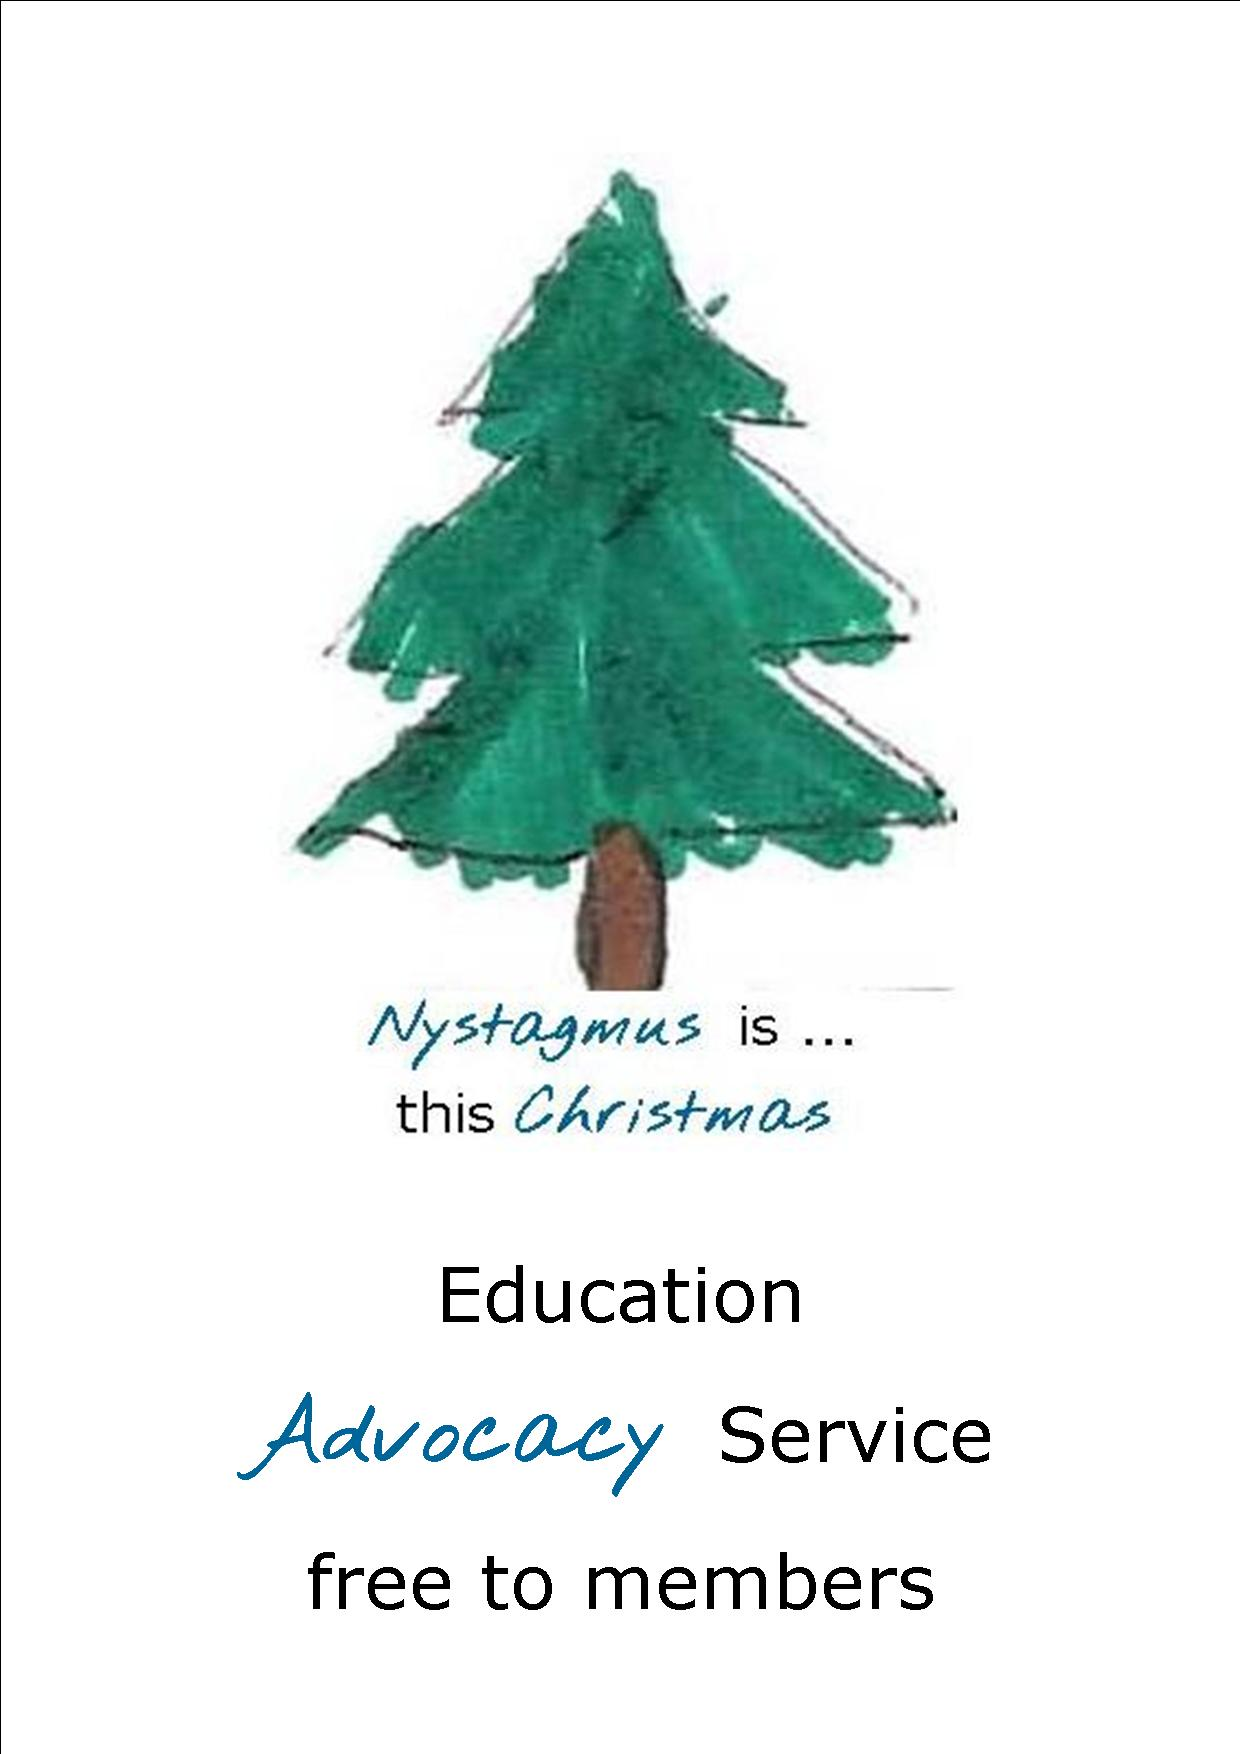 Our education advocacy service